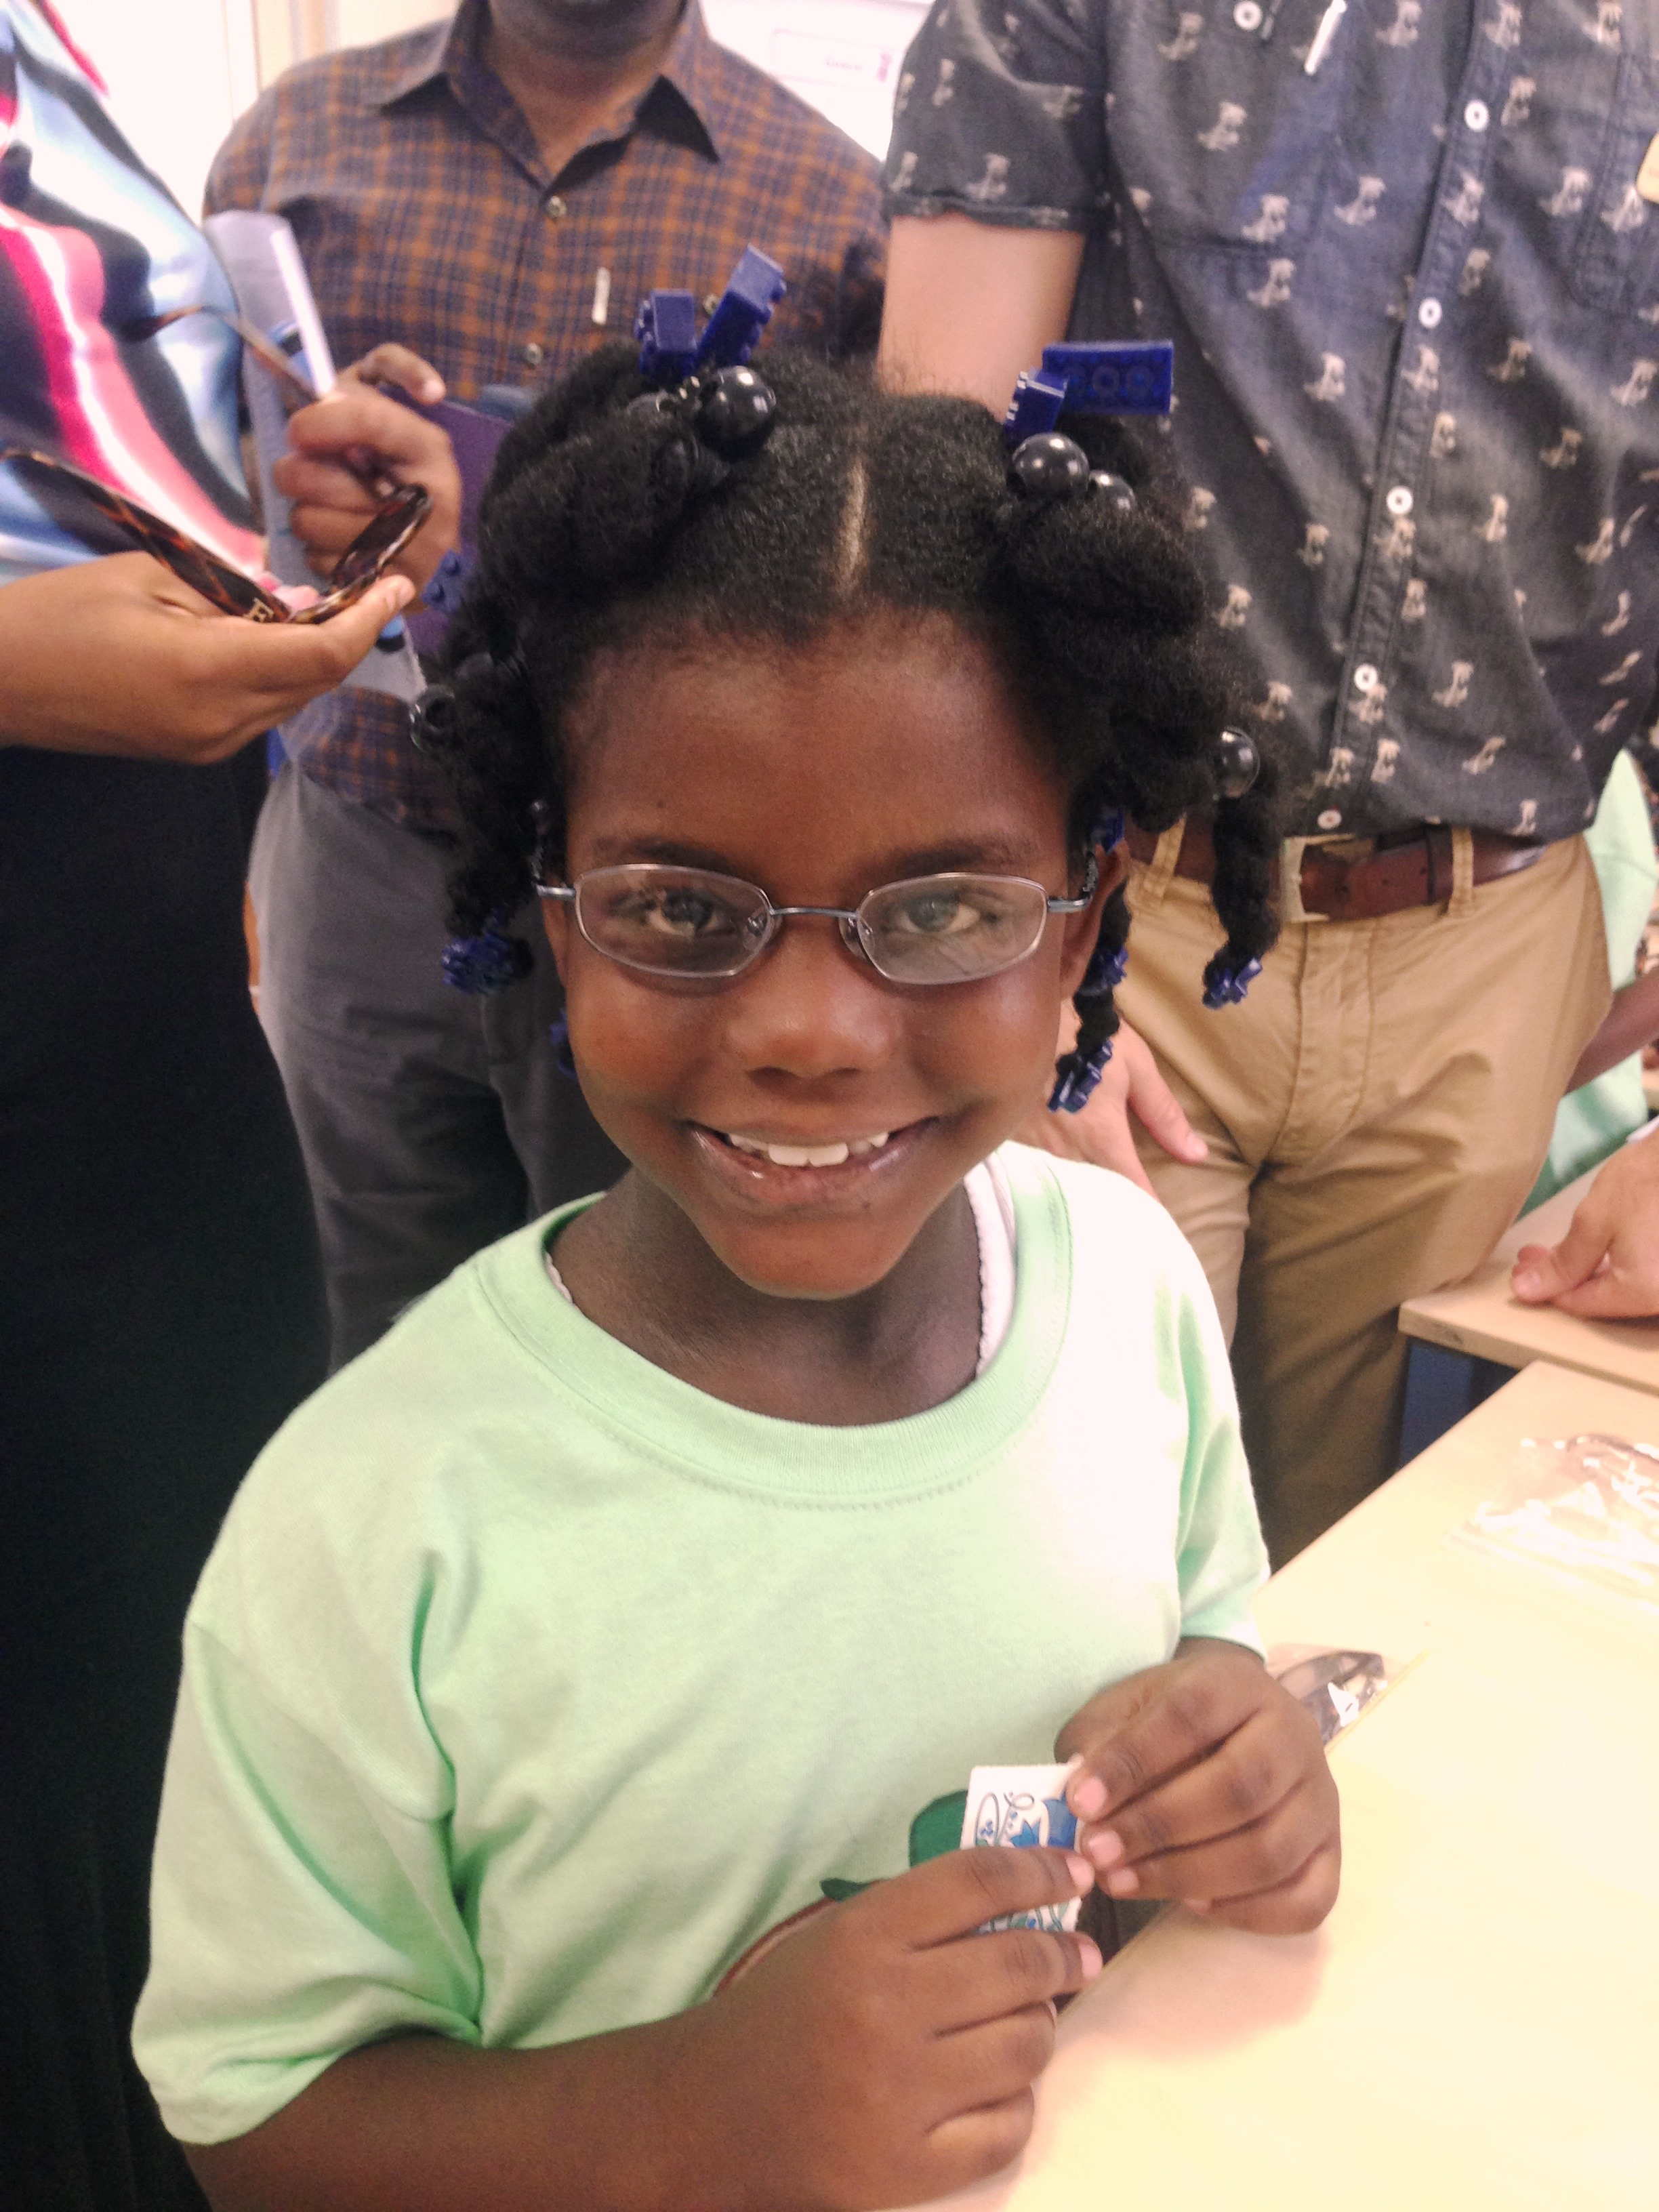 Our Mission - New Eyes for the Needy purchases new prescription eyeglasses through a voucher program for children and adults in the United States who cannot afford glasses on their own. New Eyes accepts, recycles and distributes donated glasses for poor people overseas.